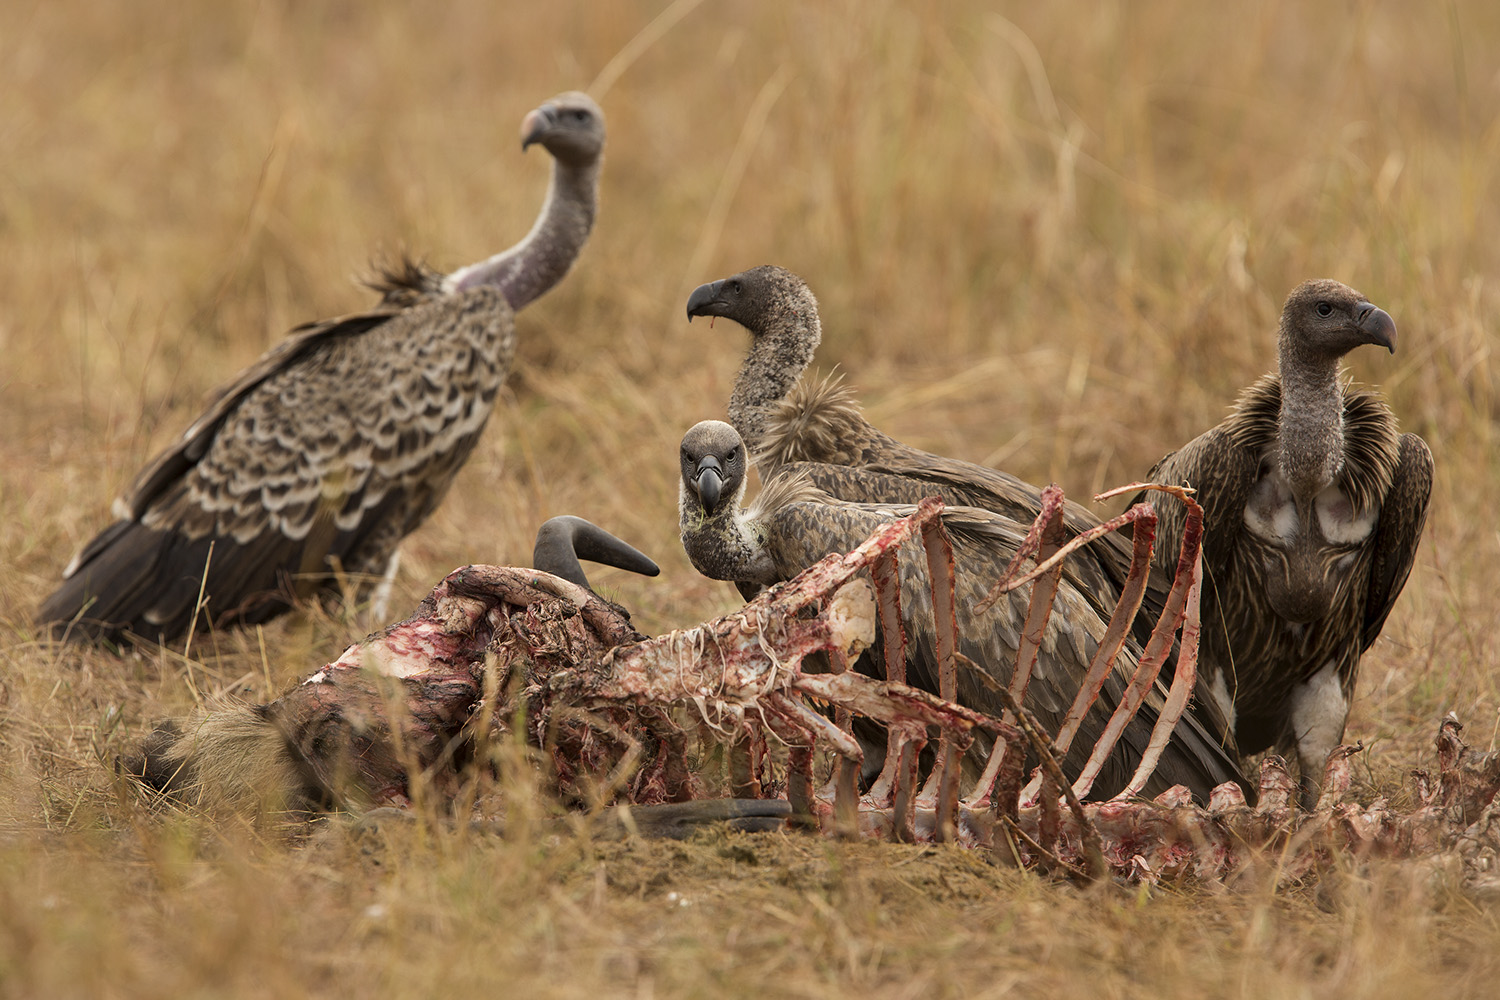 Vultures eating a carcass